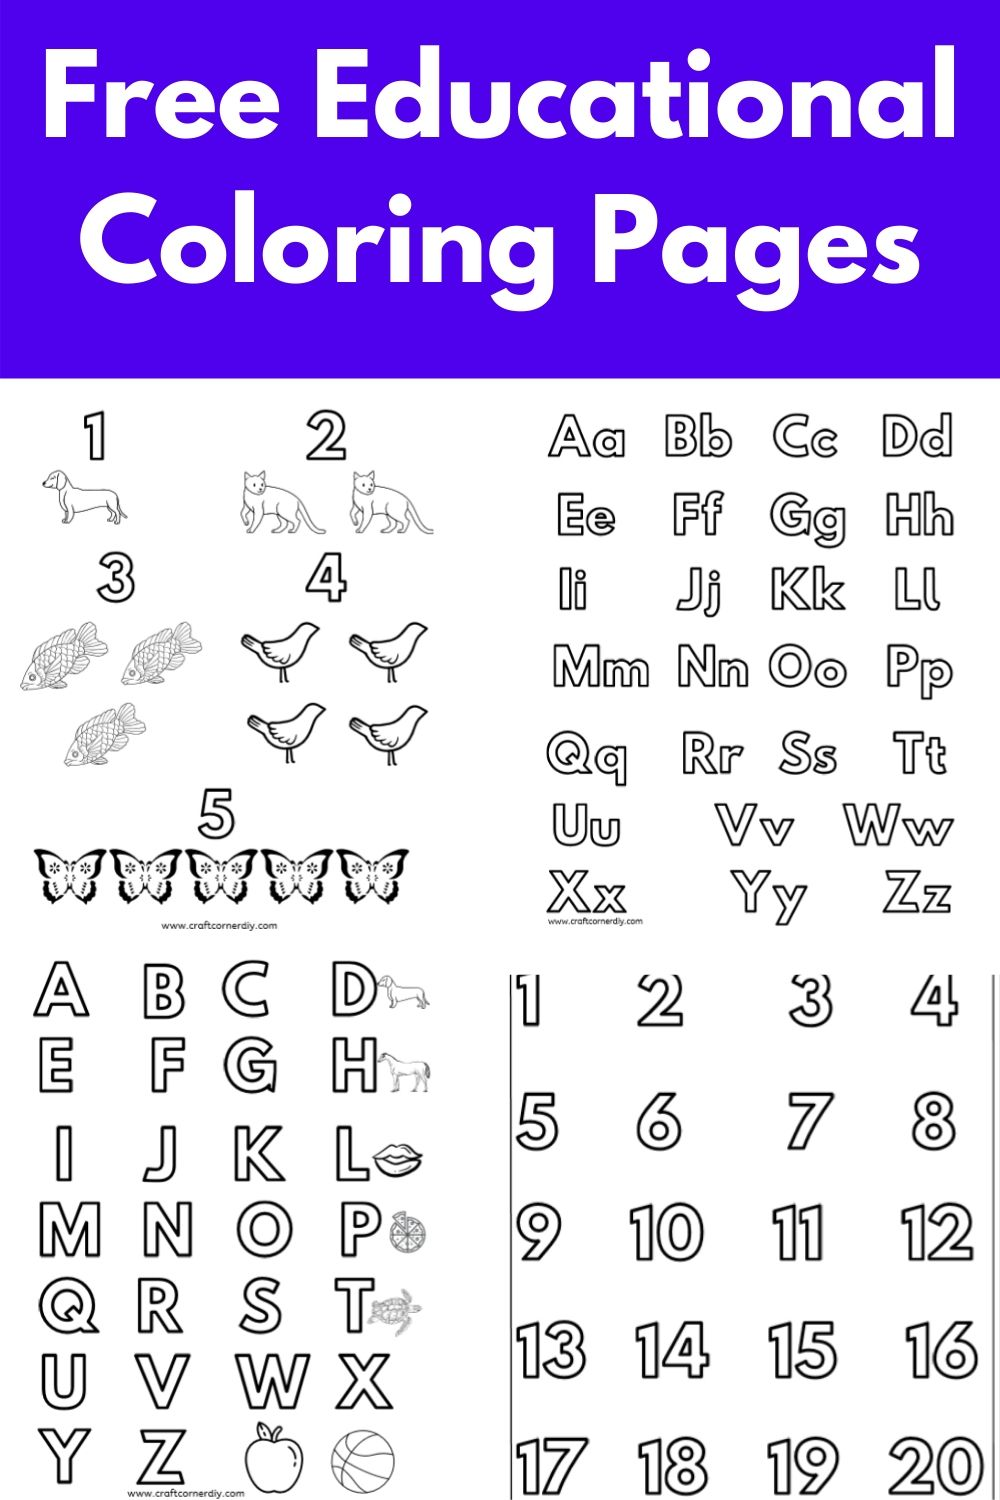 - Free Alphabet And Number Educational Coloring Pages Craft Corner DIY